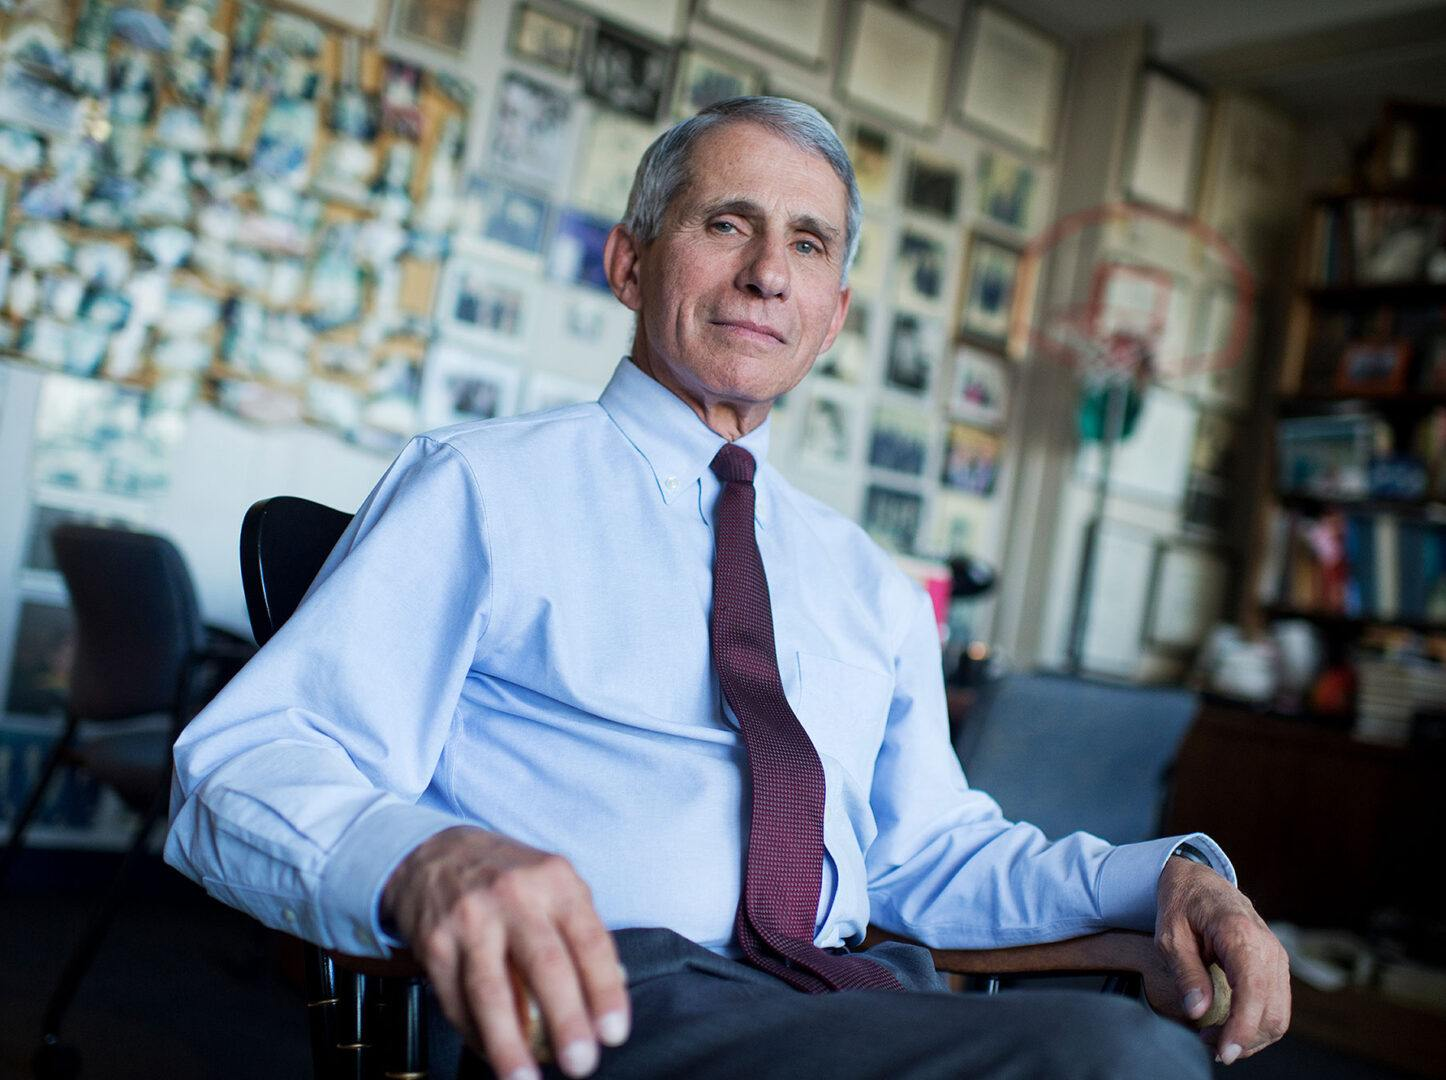 Dr. Anthony Fauci MD '66